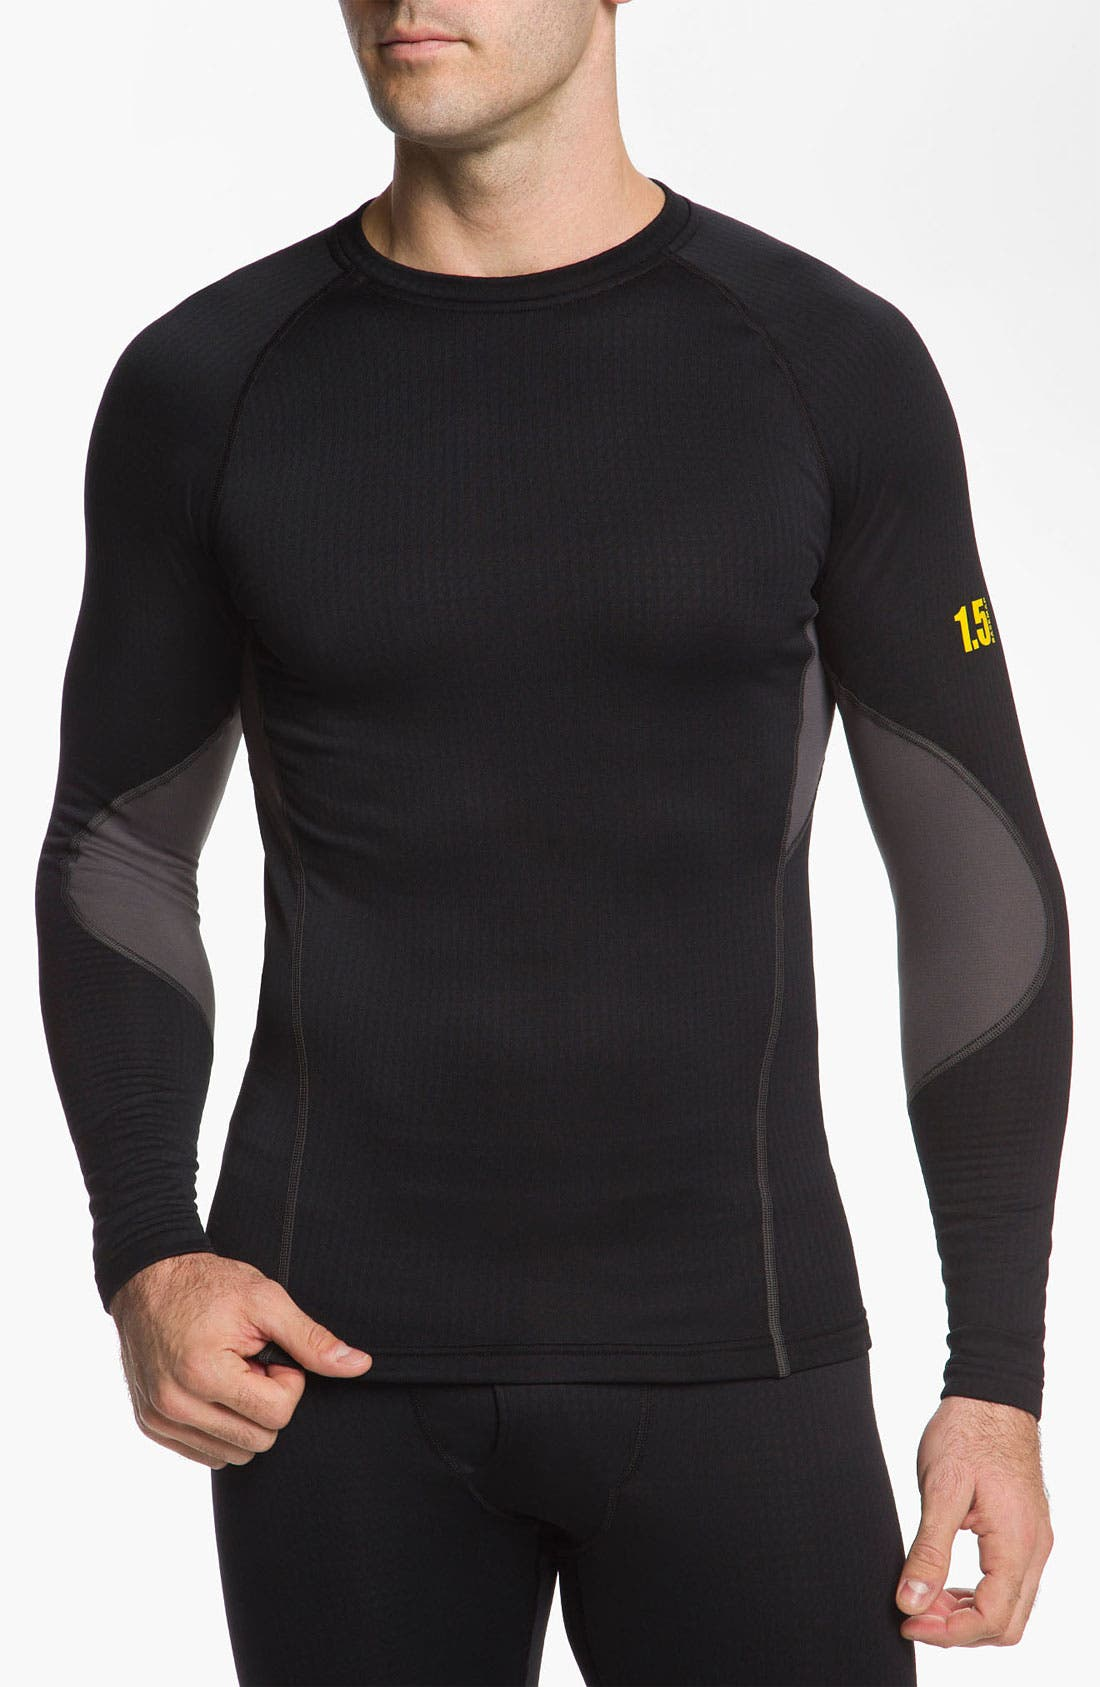 Main Image - Under Armour 'Base 1.5' Fitted Crewneck Top (Online Exclusive)